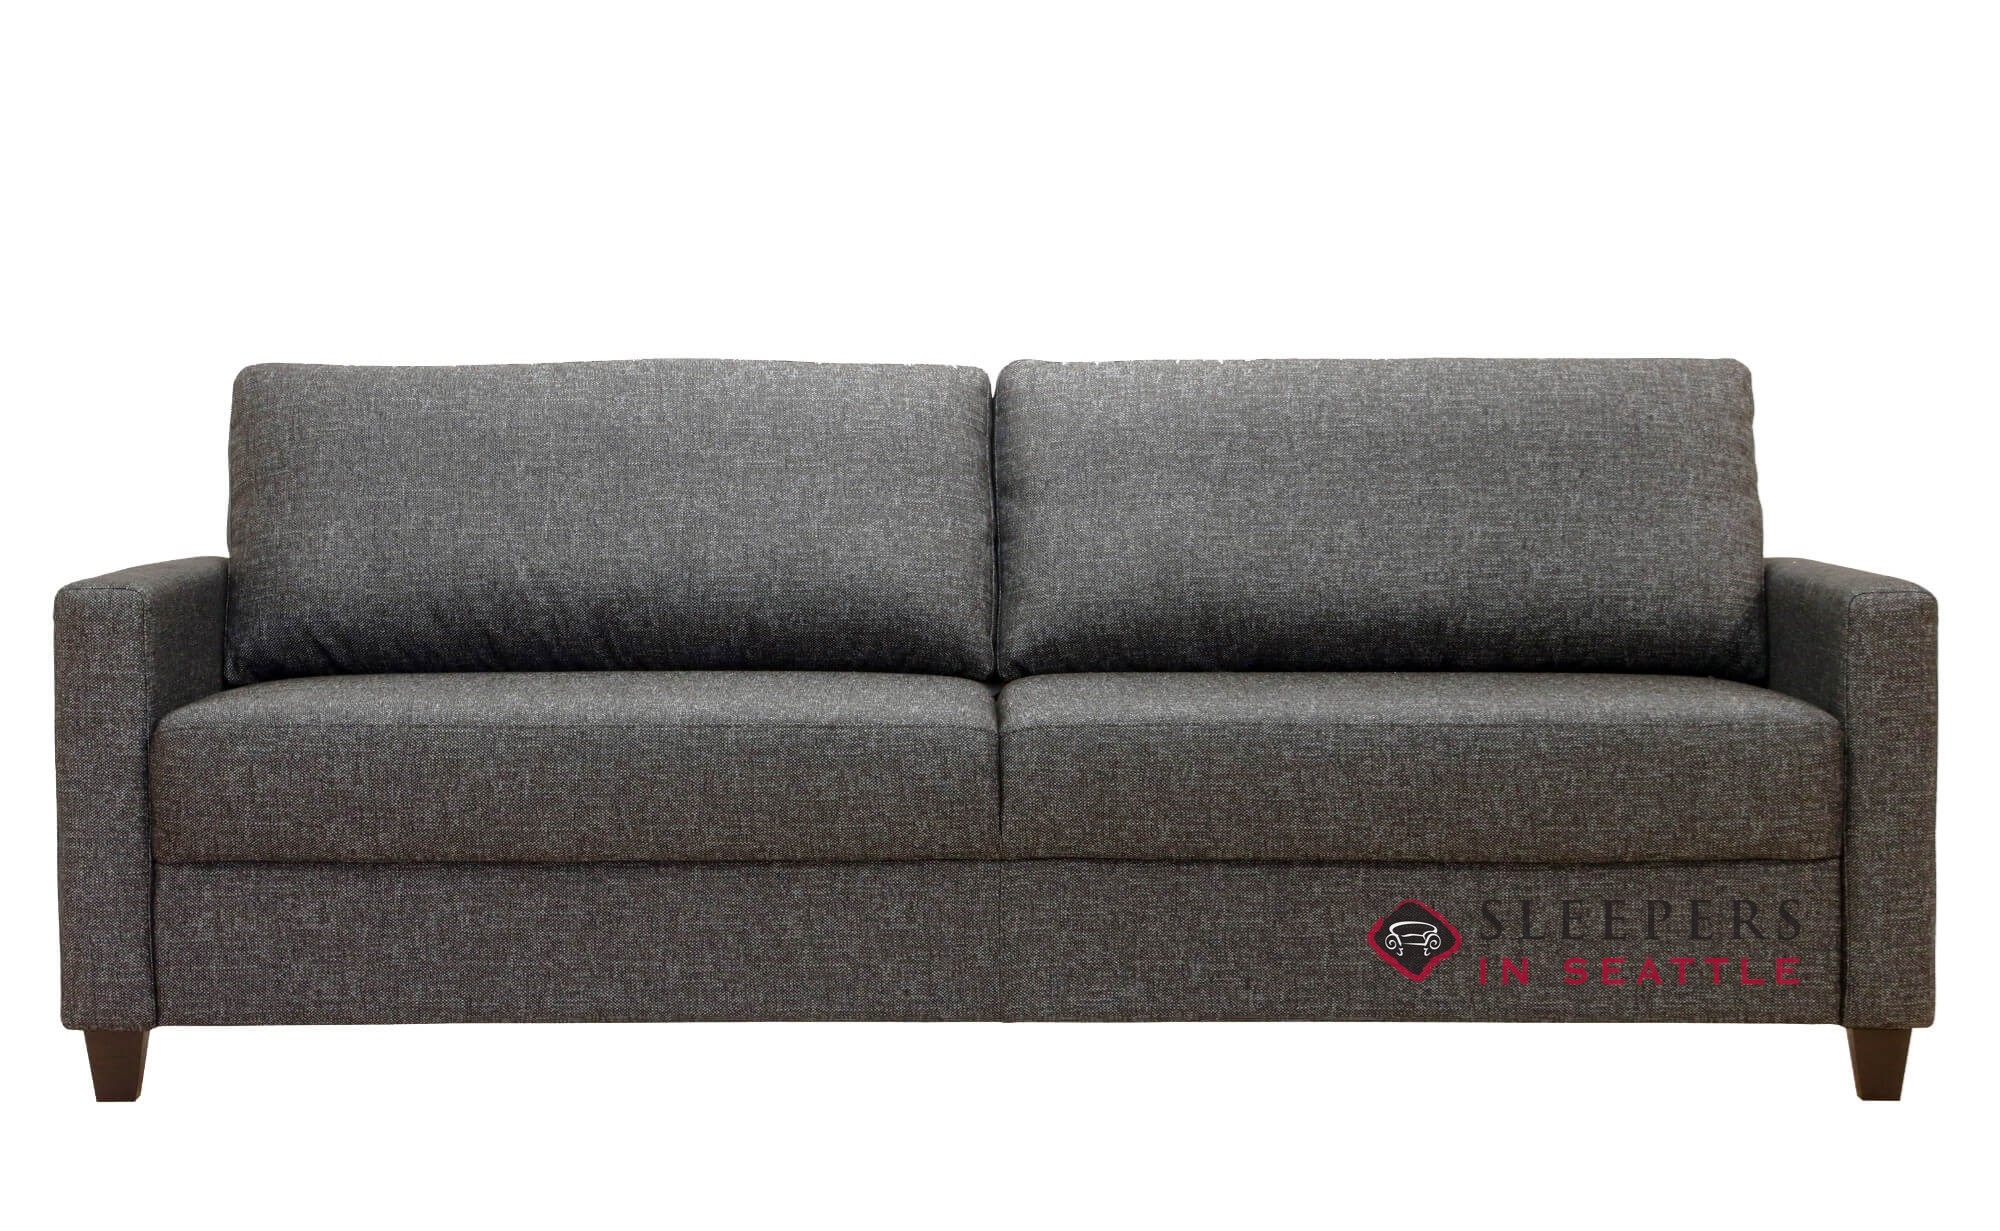 Customize and Personalize Free Full Fabric Sofa by Luonto ...